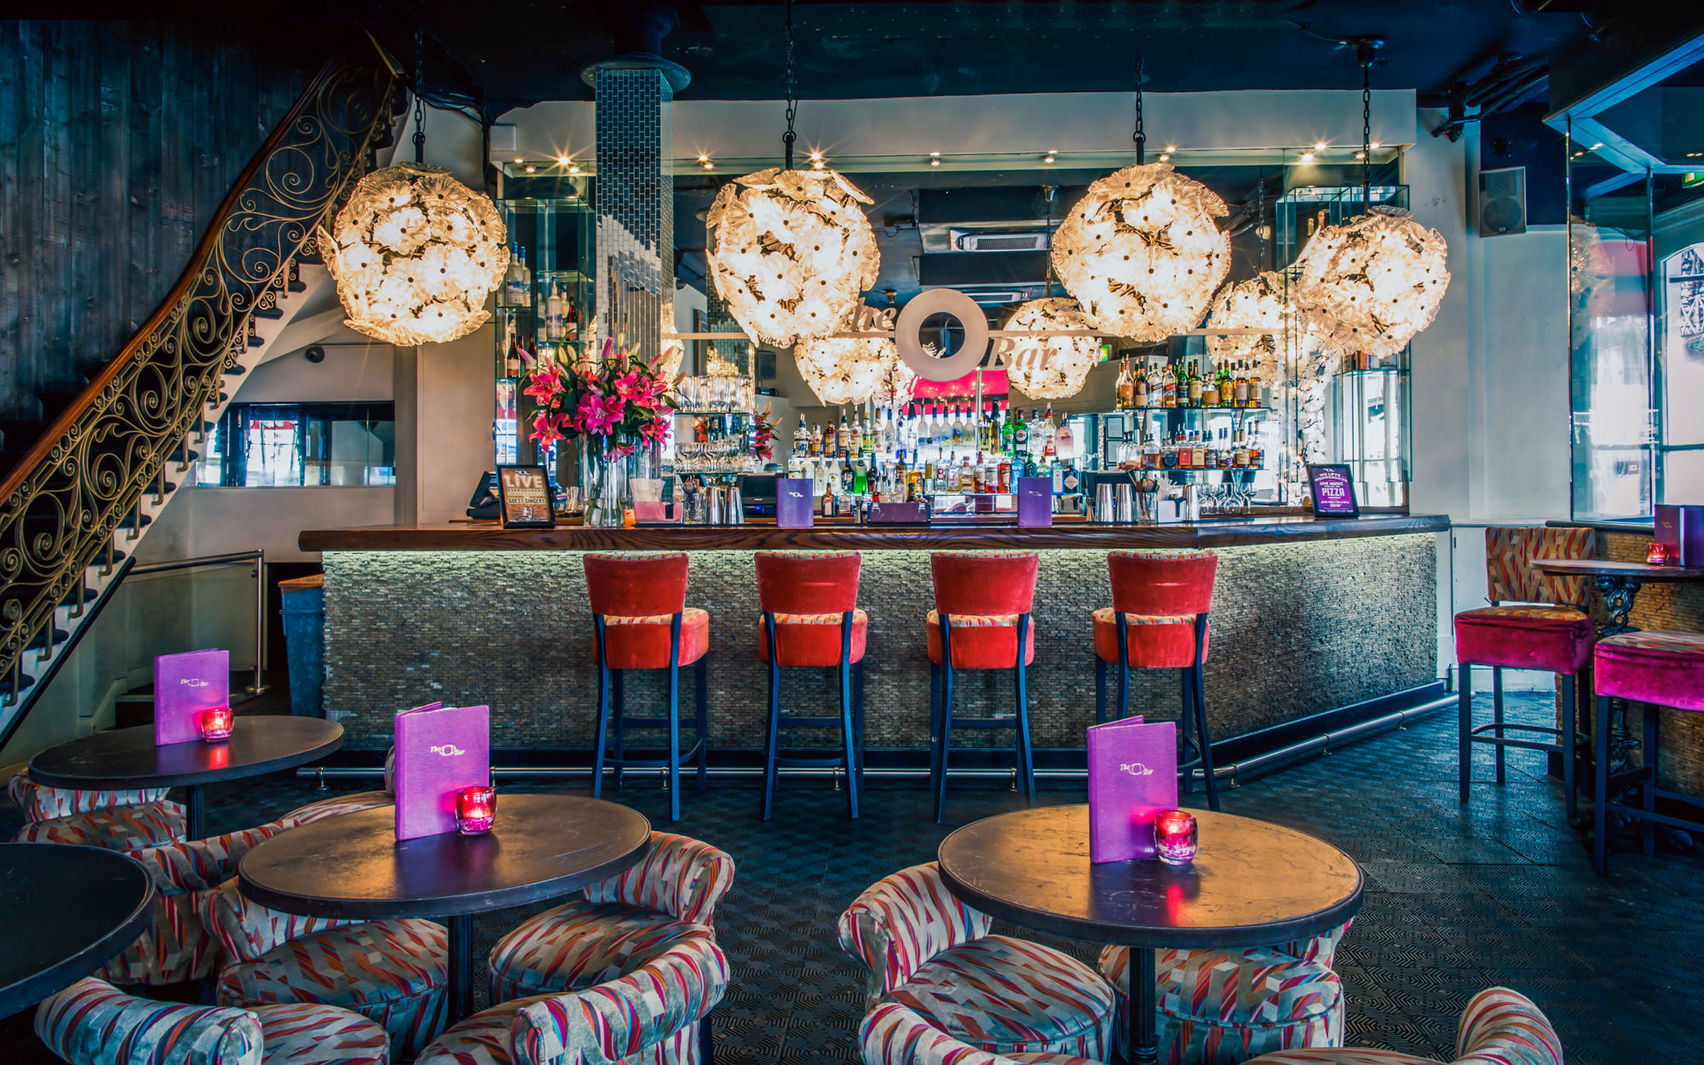 A bar with red chairs and large circular lights